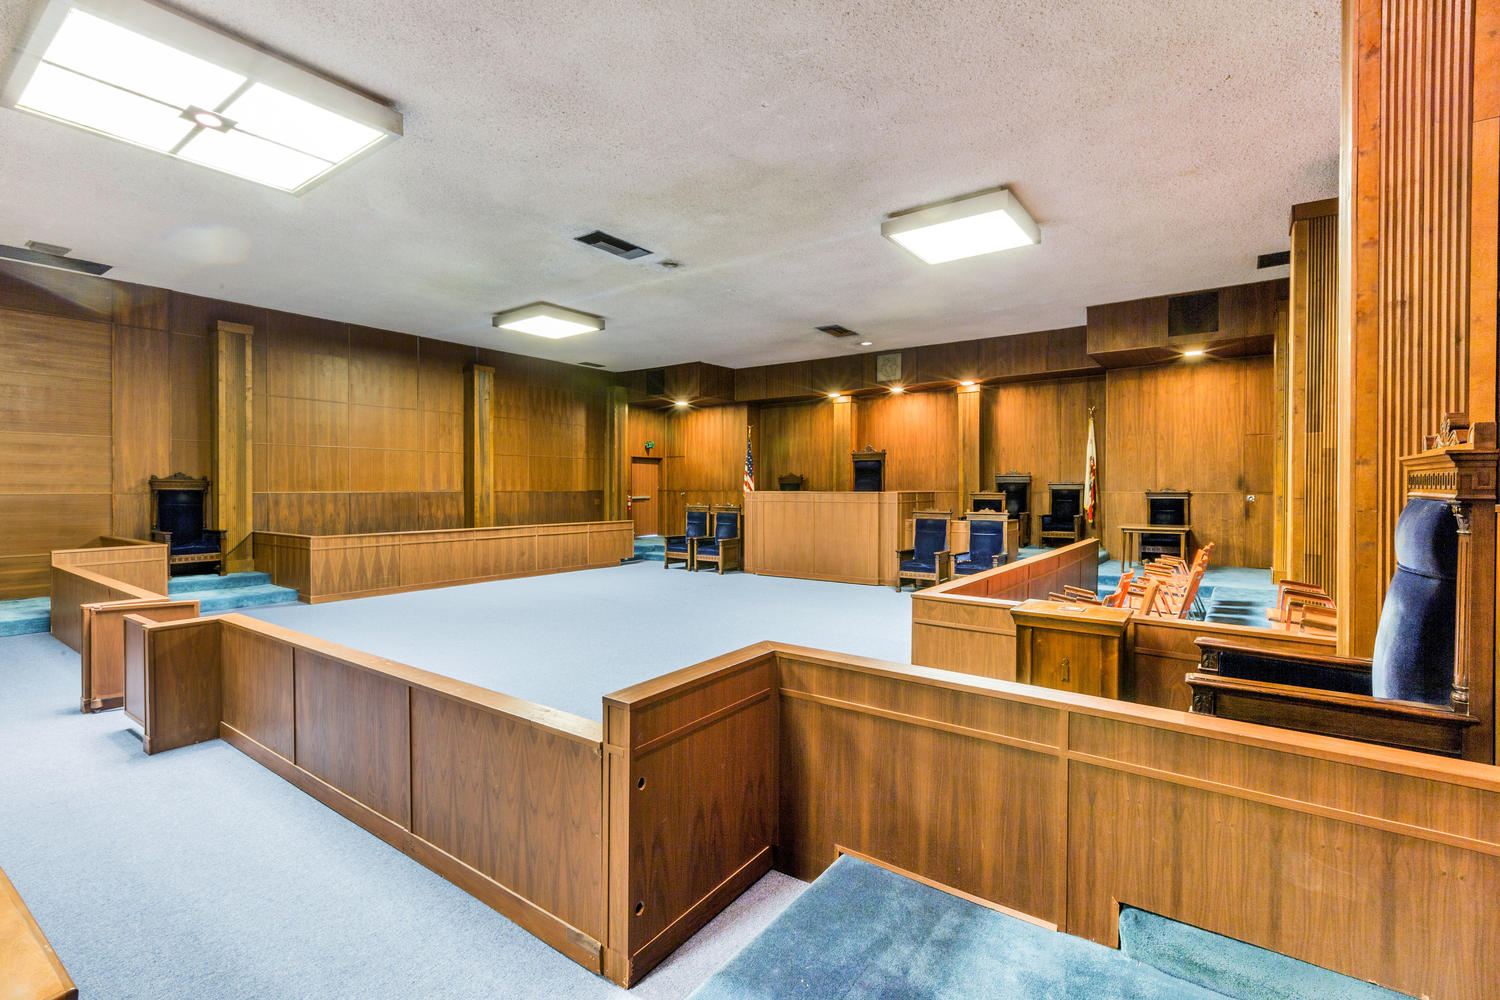 Courtroom Set Rental Los Angeles Film Locations